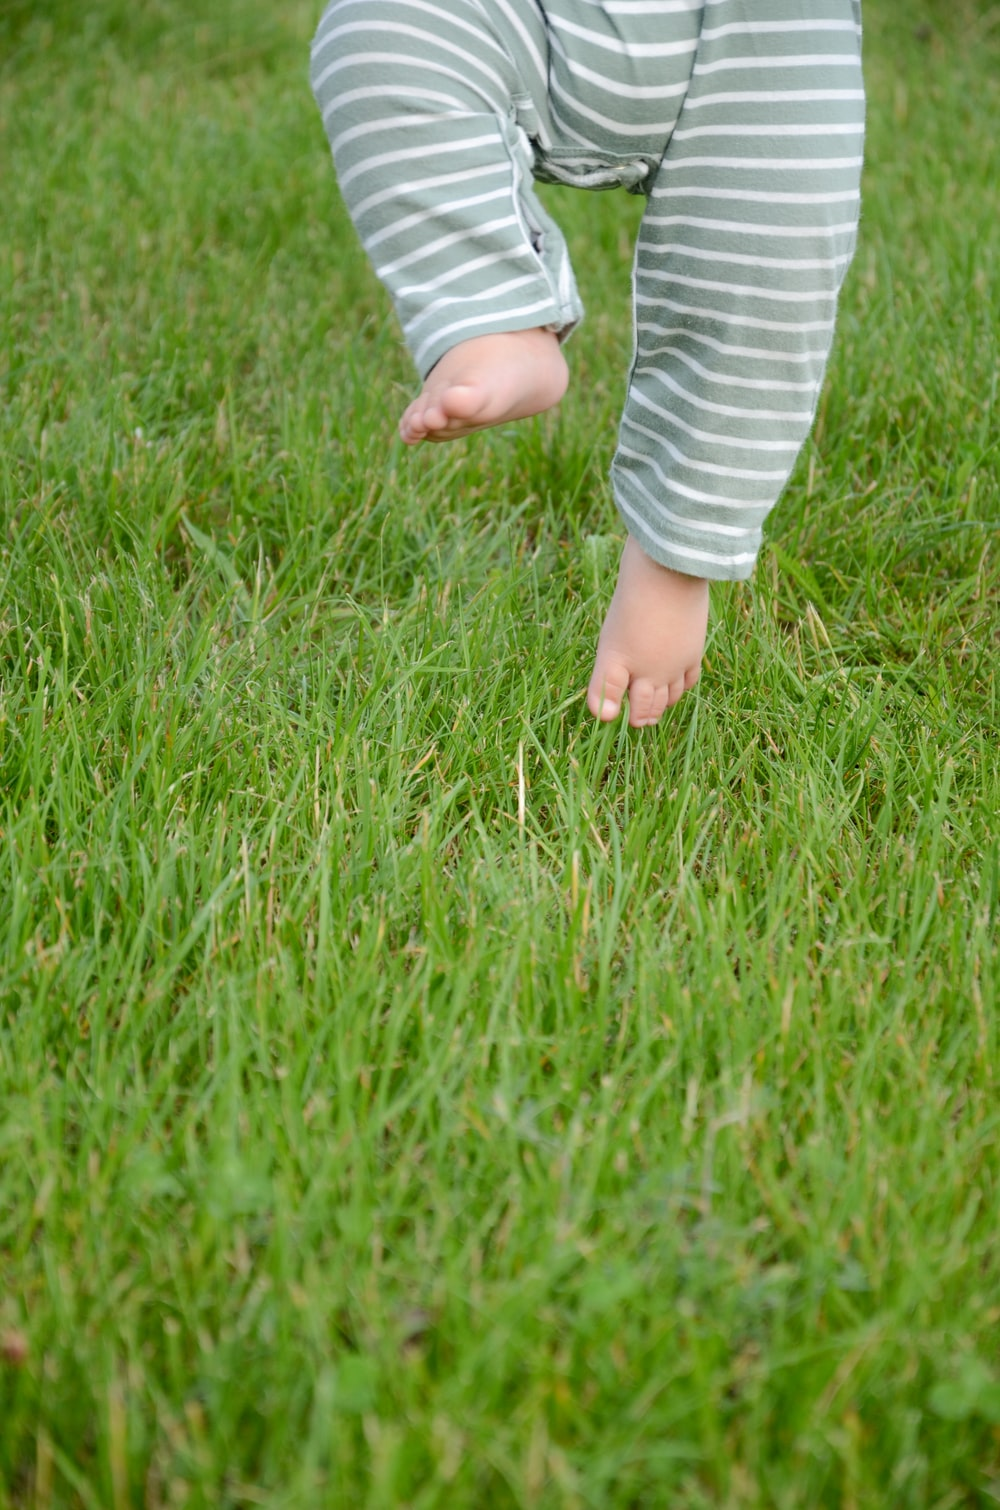 child in white and blue striped long sleeve shirt standing on green grass field during daytime